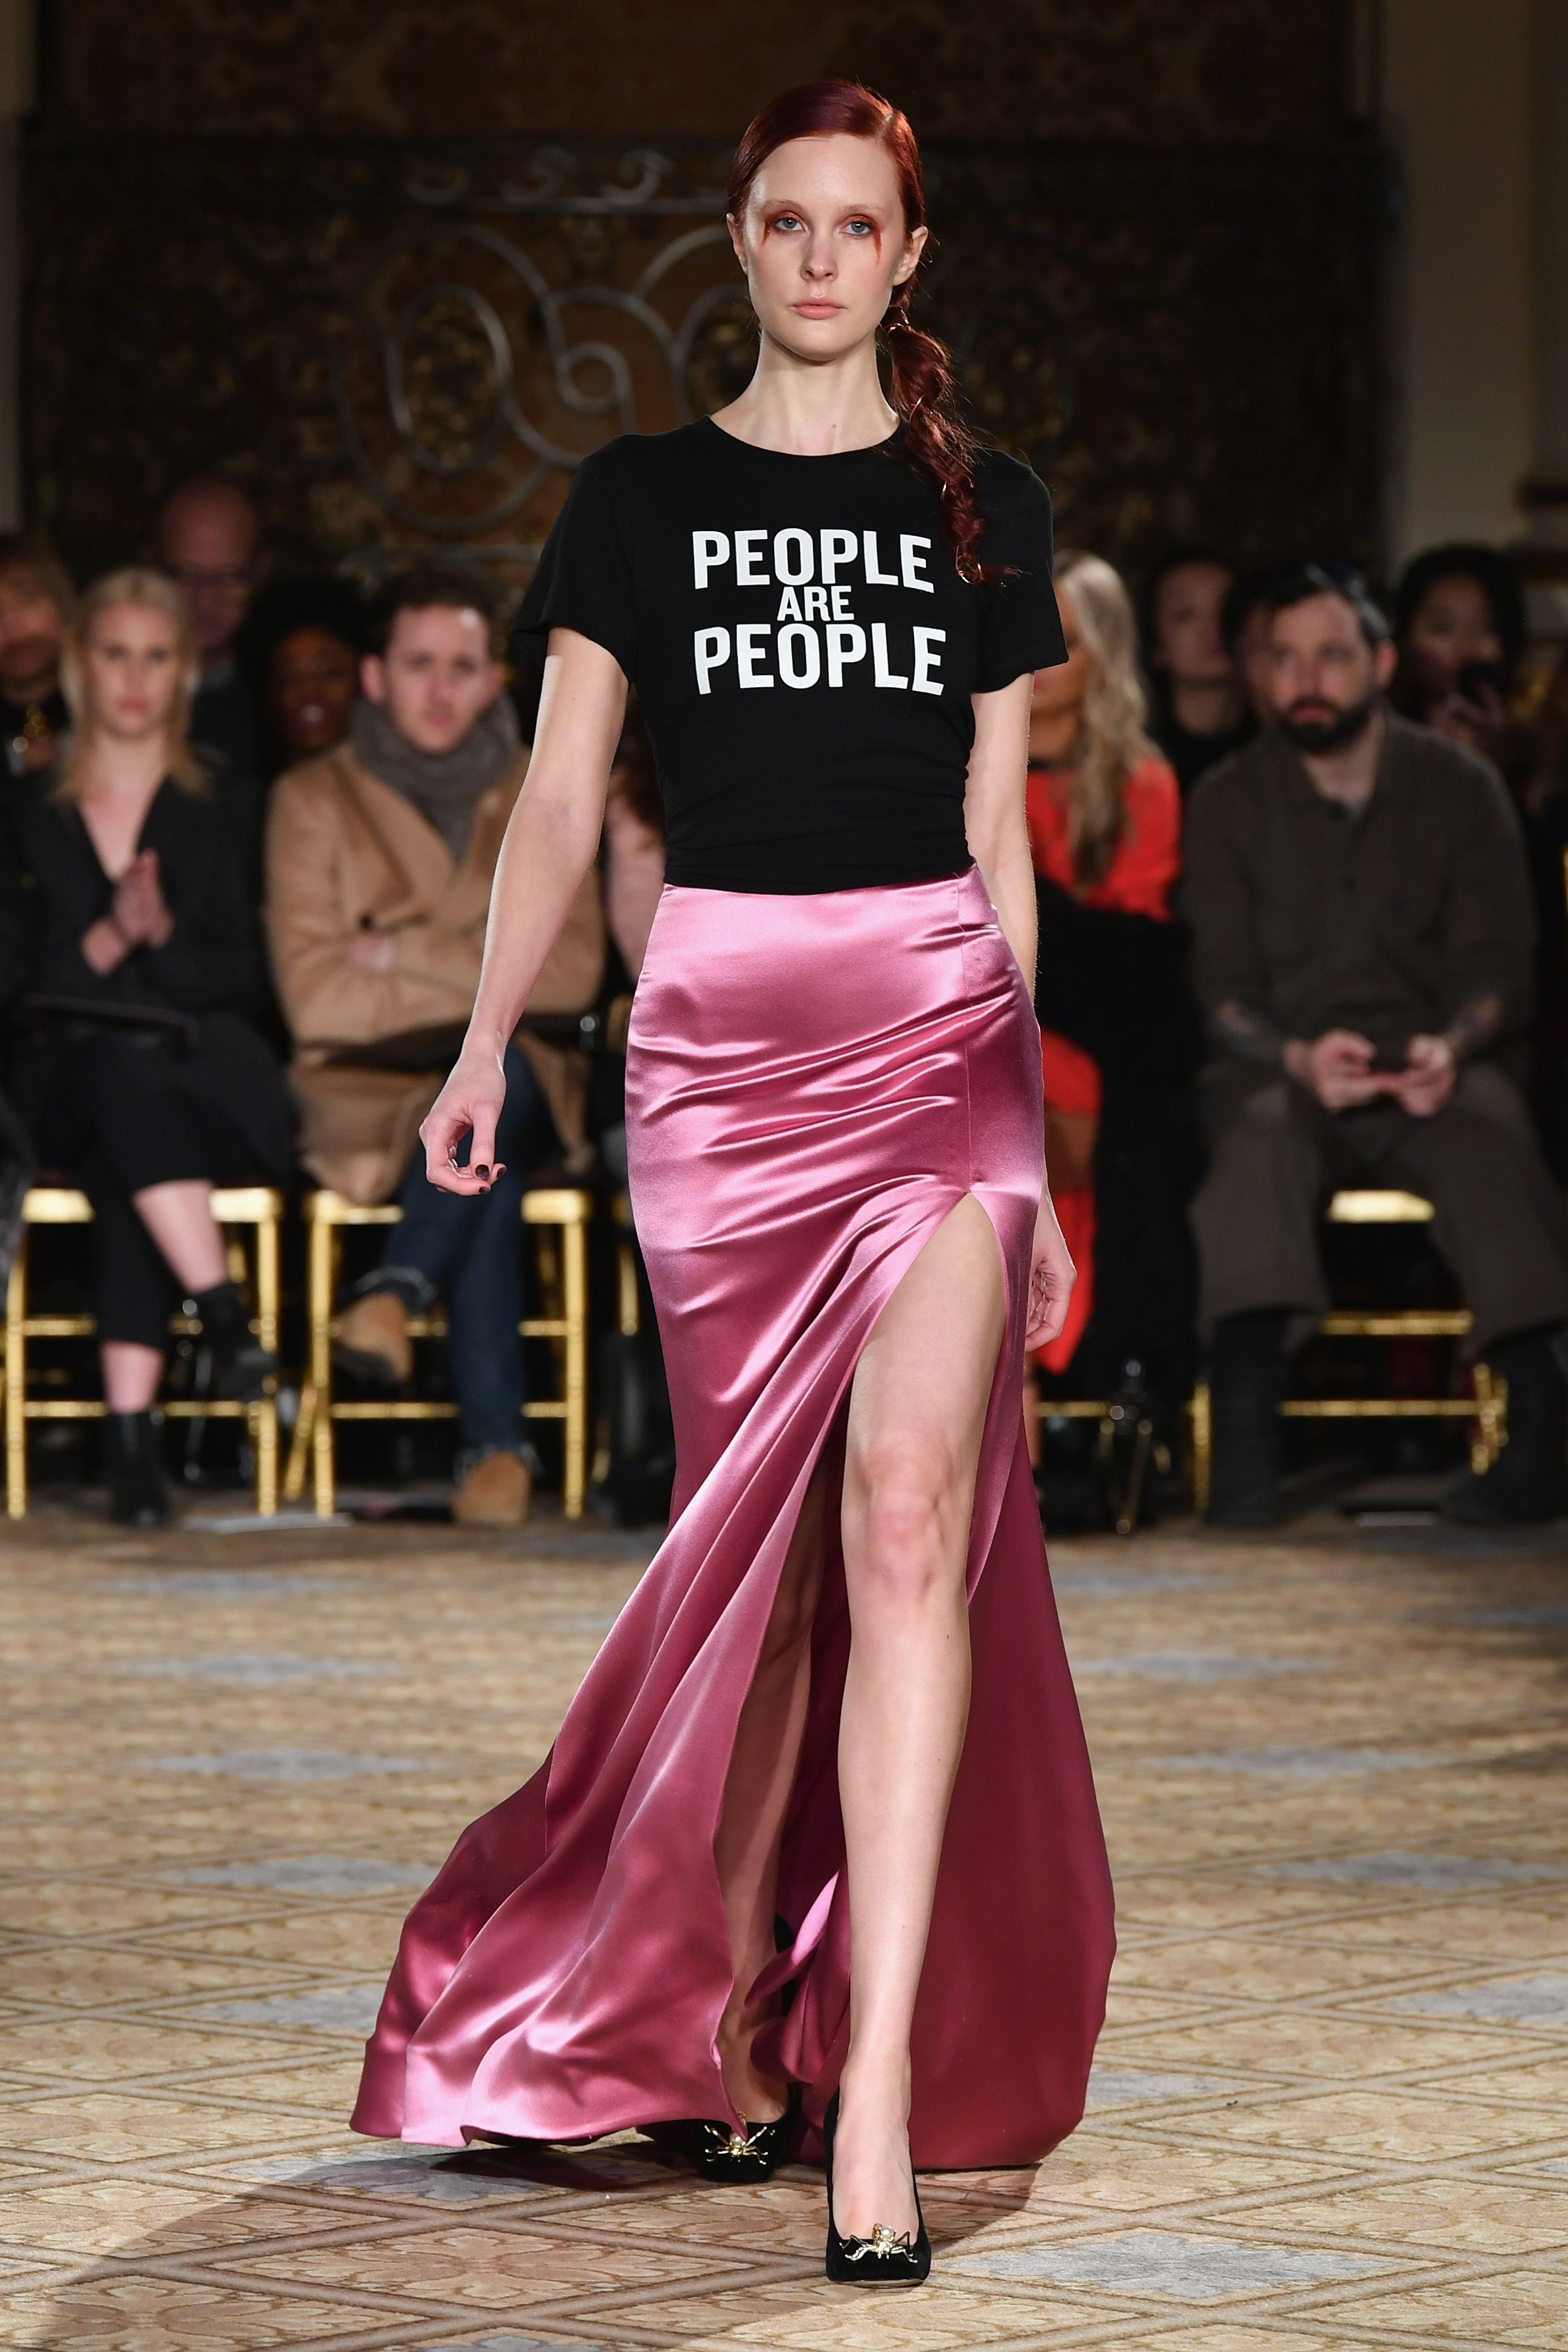 "<p>Siriano echoed the sentiment with a tee-shirt that simply read ""People are People."" Proceeds from the ""see now, buy now"" shirt <a href=""http://store.christiansiriano.com/product/people-are-people-tee-benefits-aclu"" target=""_blank"" data-tracking-id=""recirc-text-link"">benefit the ACLU</a>. </p>"